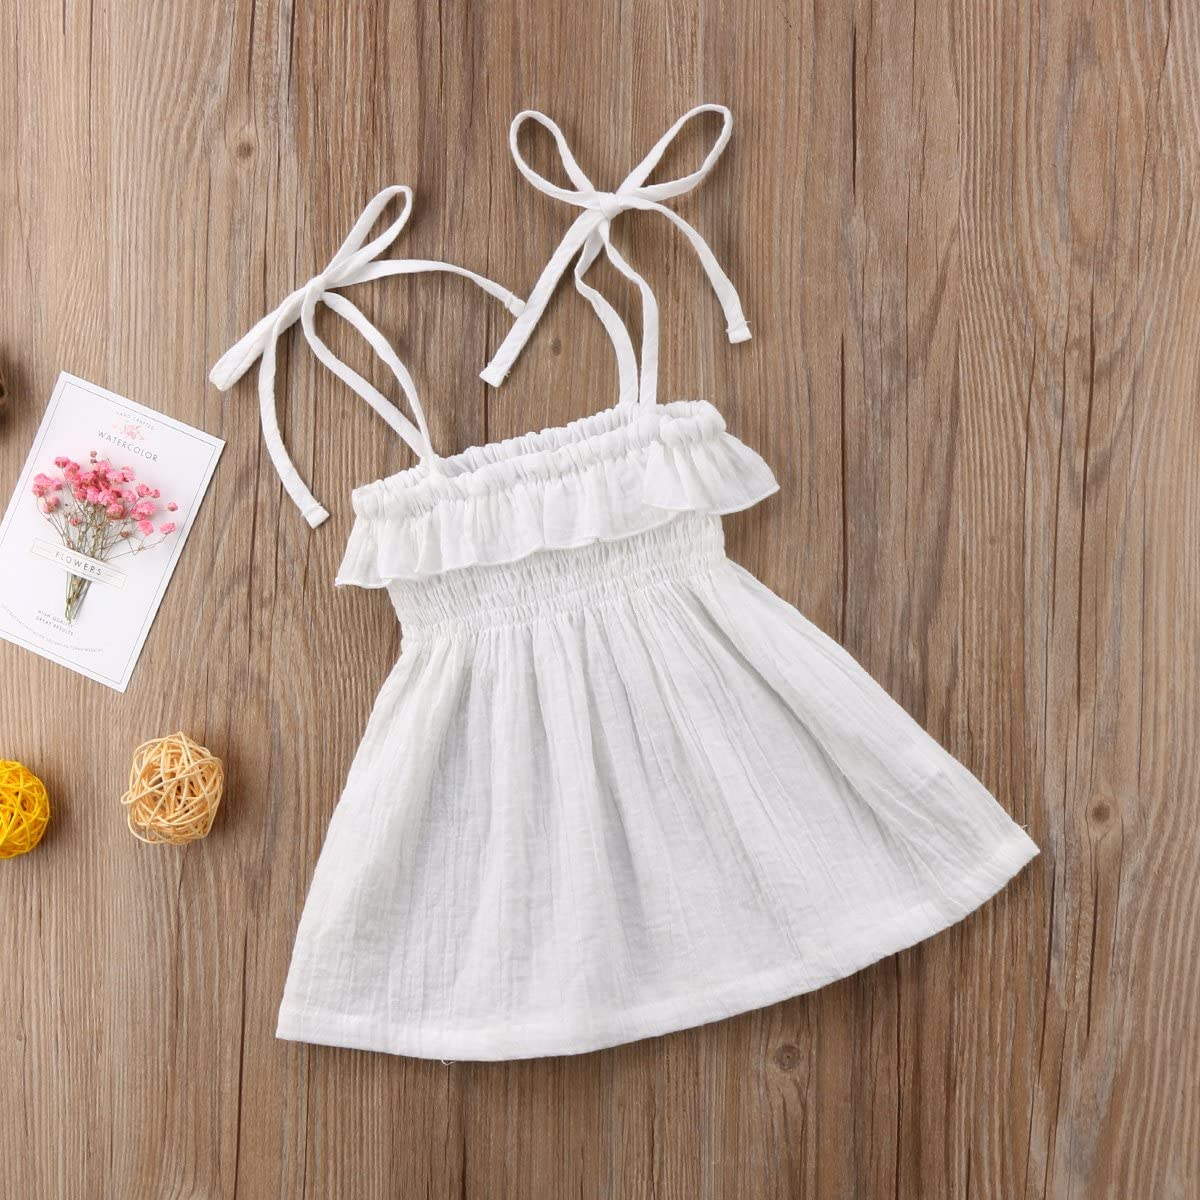 Enhill Summer Toddler Infant Baby Girl Sleeveless Ruffle Princess Beach Dress Suspender Skirt